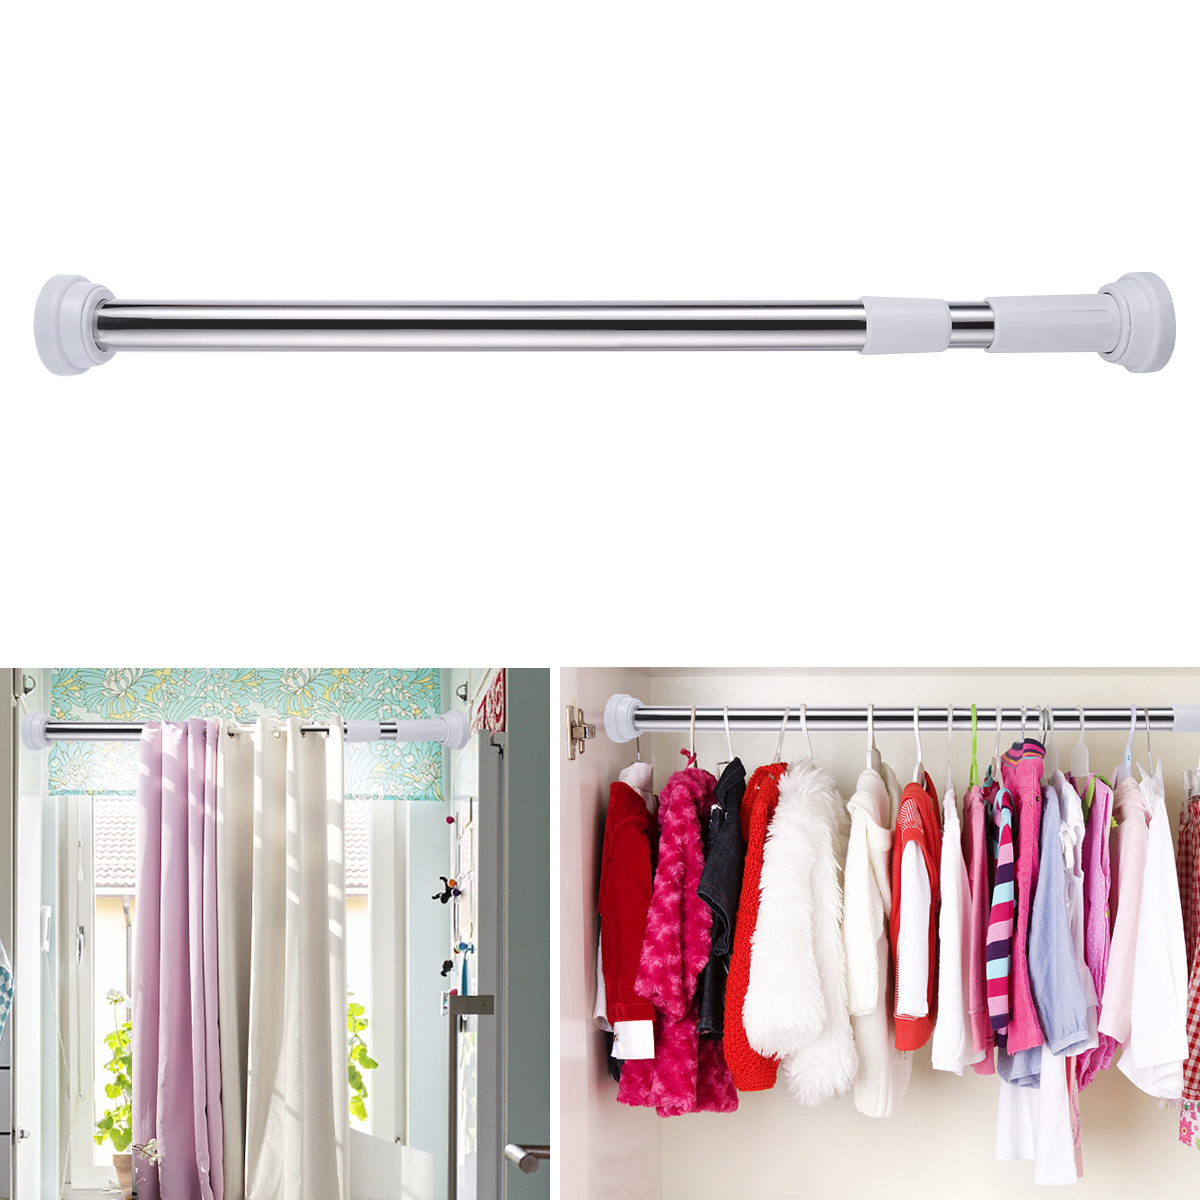 Adjustable Shower Curtain Rod.2019 Stainless Steel Bathroom Shower Curtain Rod Adjustable Shower Curtain Tension Rod From Olgar 25 05 Dhgate Com